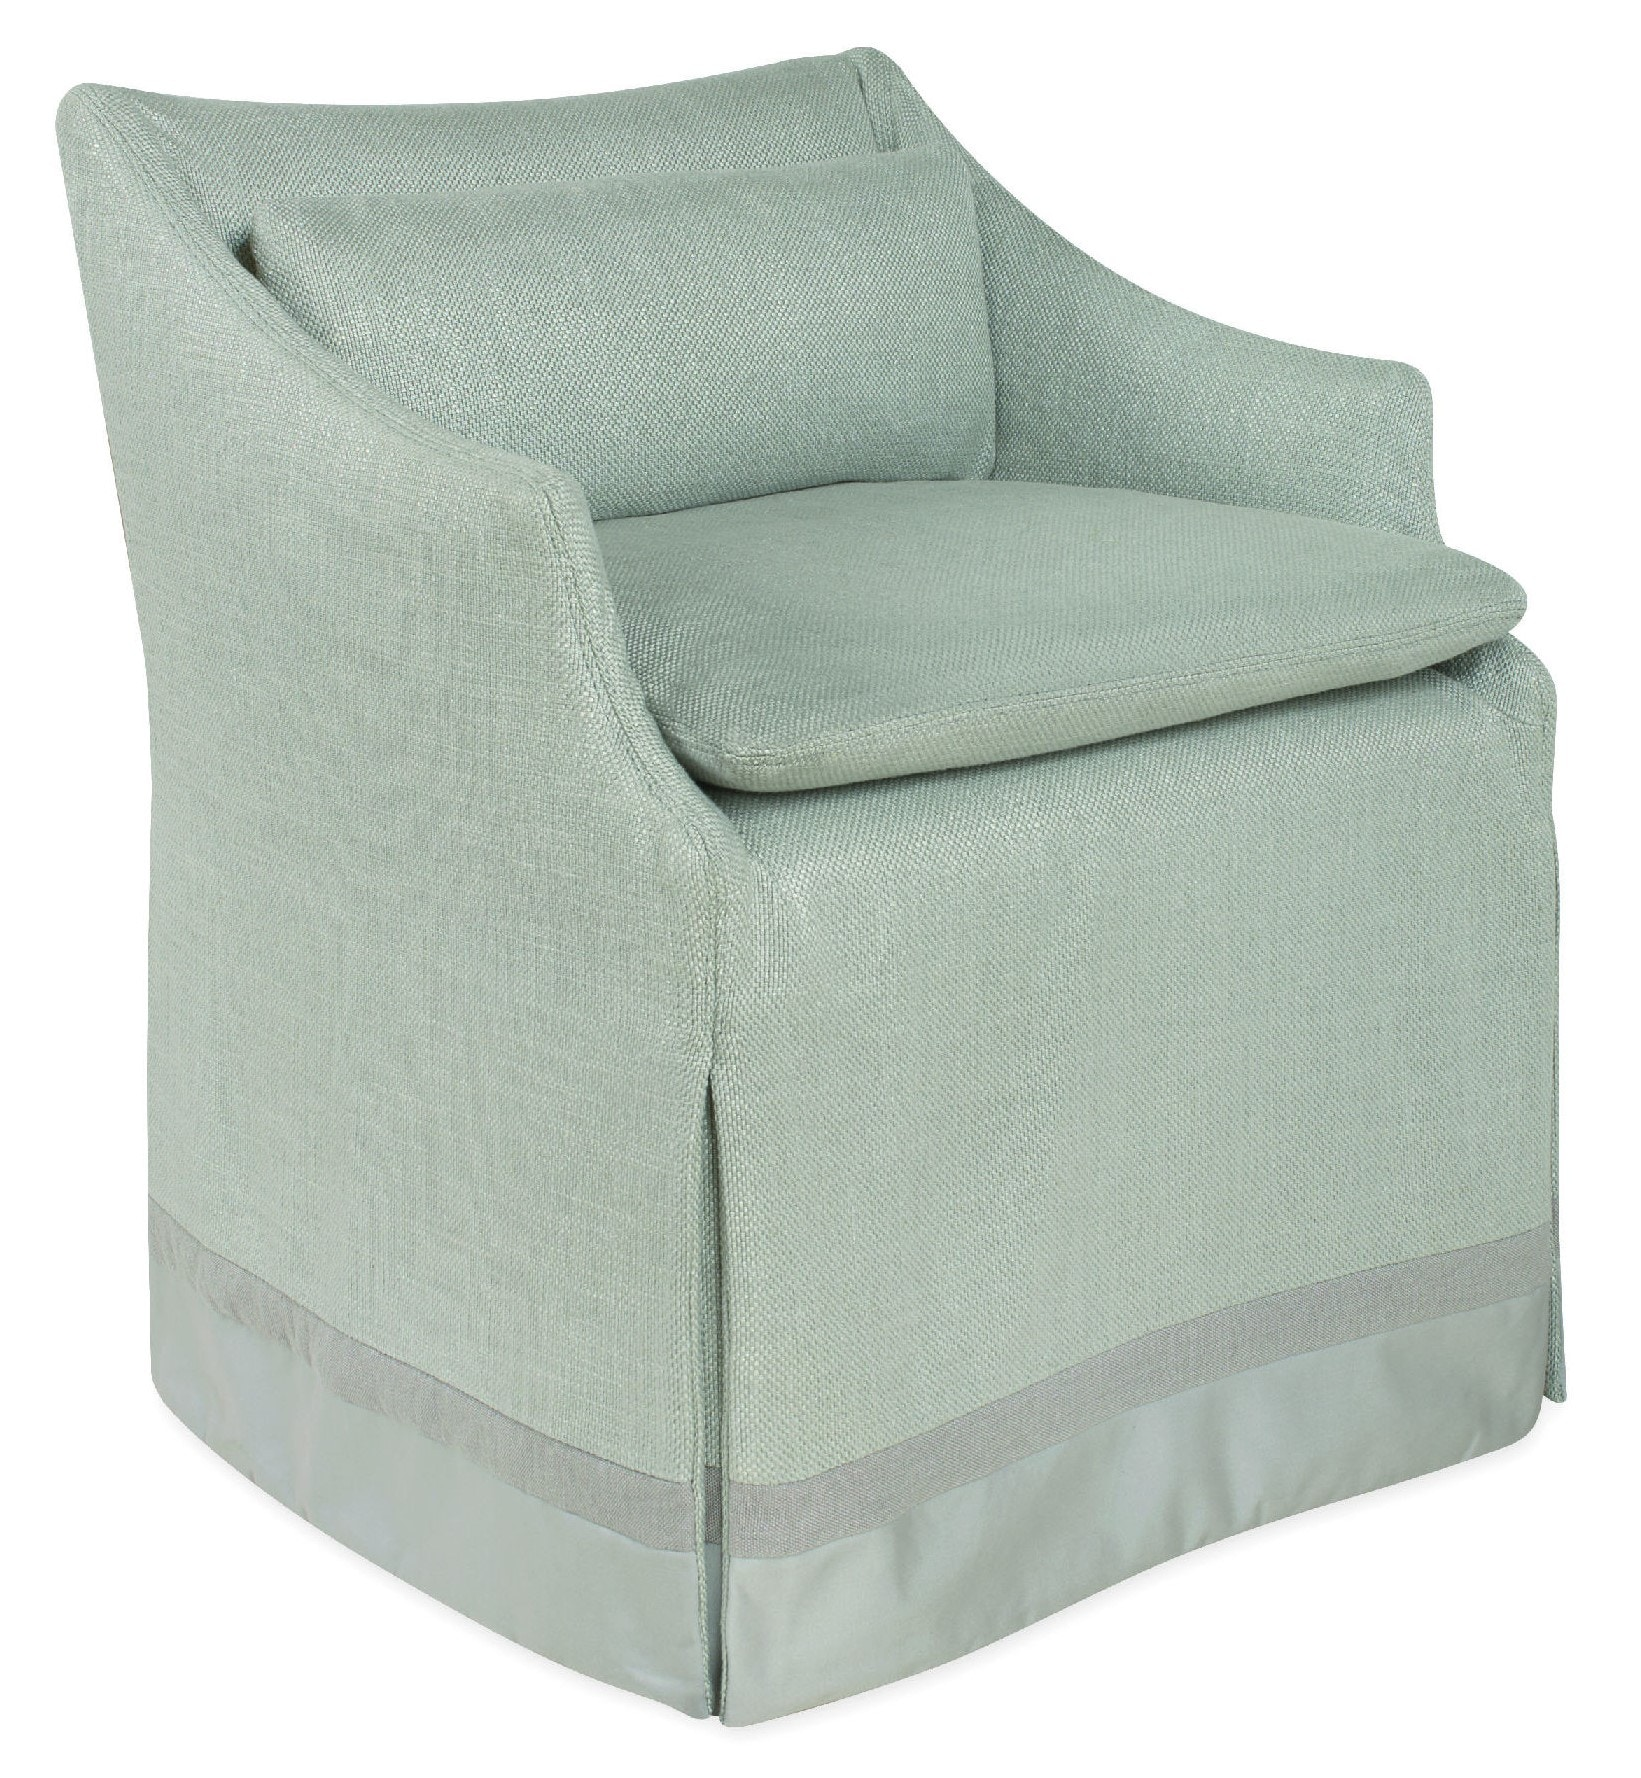 Lee Industries Slipcovered Low Back Campaign Chair C5203 01C